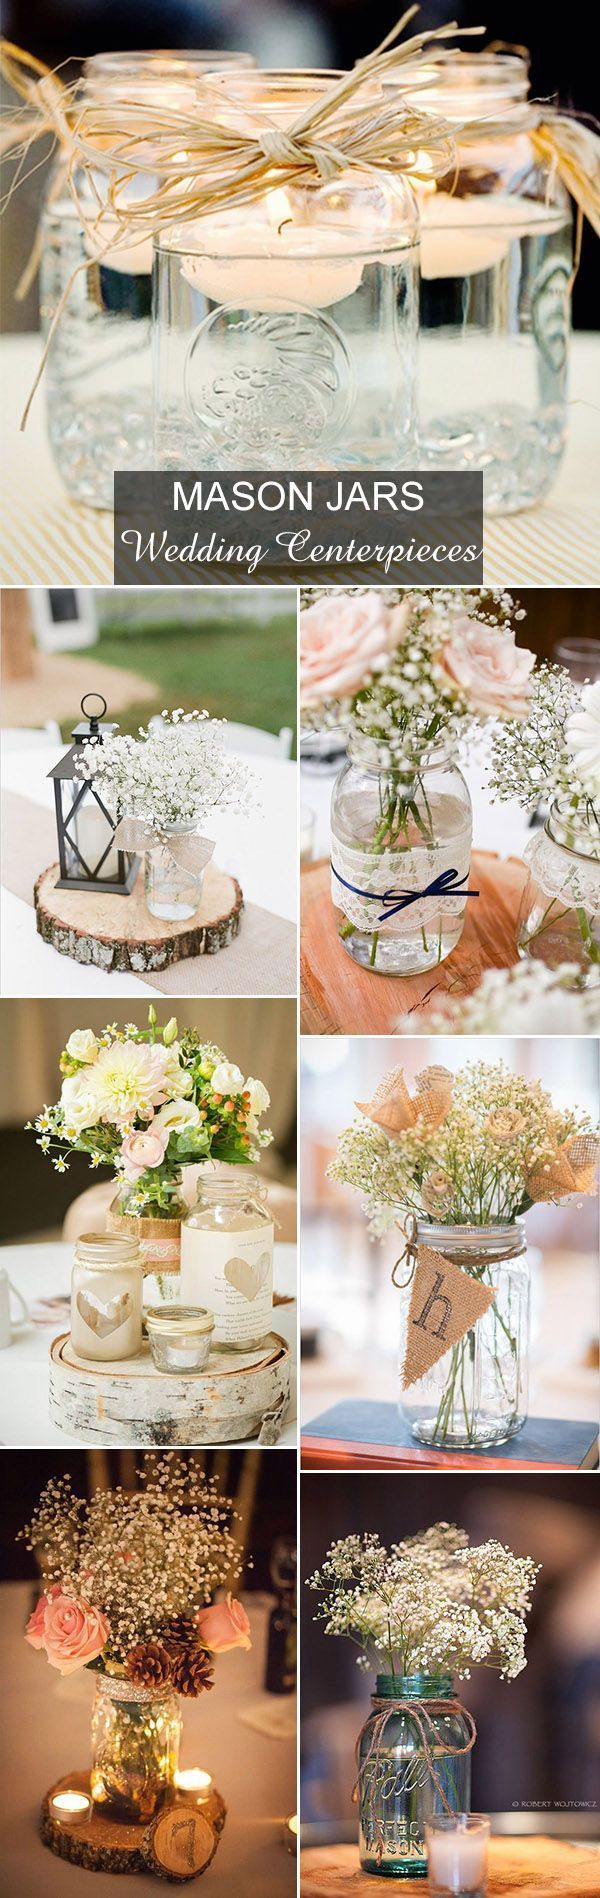 best 25+ centerpiece ideas ideas on pinterest | simple wedding